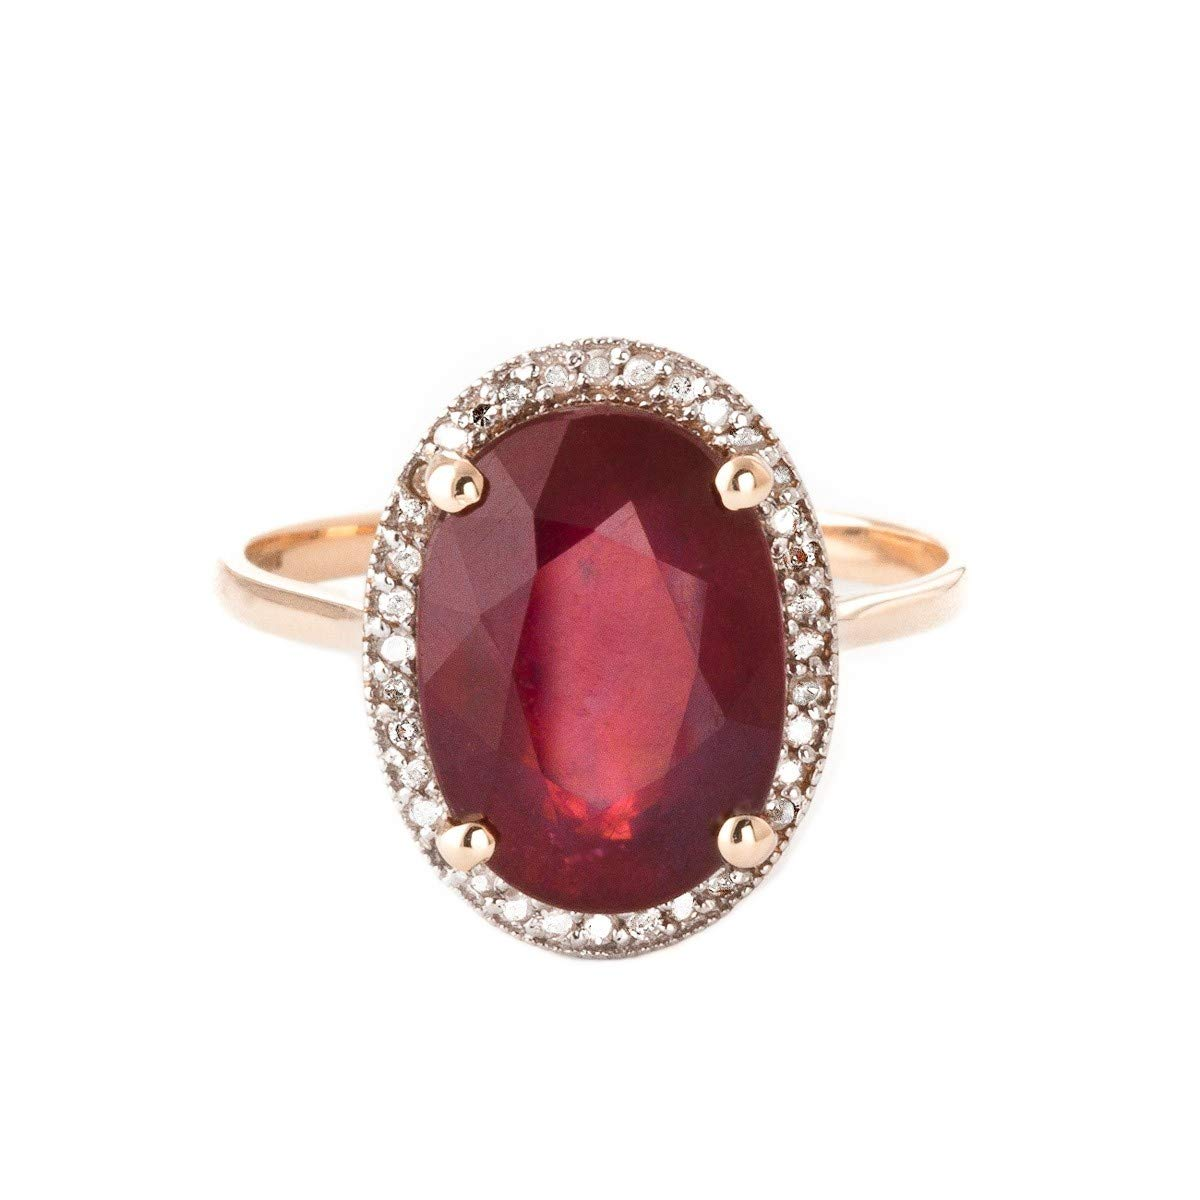 Galaxy Gold7.93 Carat 14k Solid Rose Gold Ring with Natural Oval-Shaped Ruby and Genuine Diamonds - Size 5.5 by Galaxy Gold (Image #1)